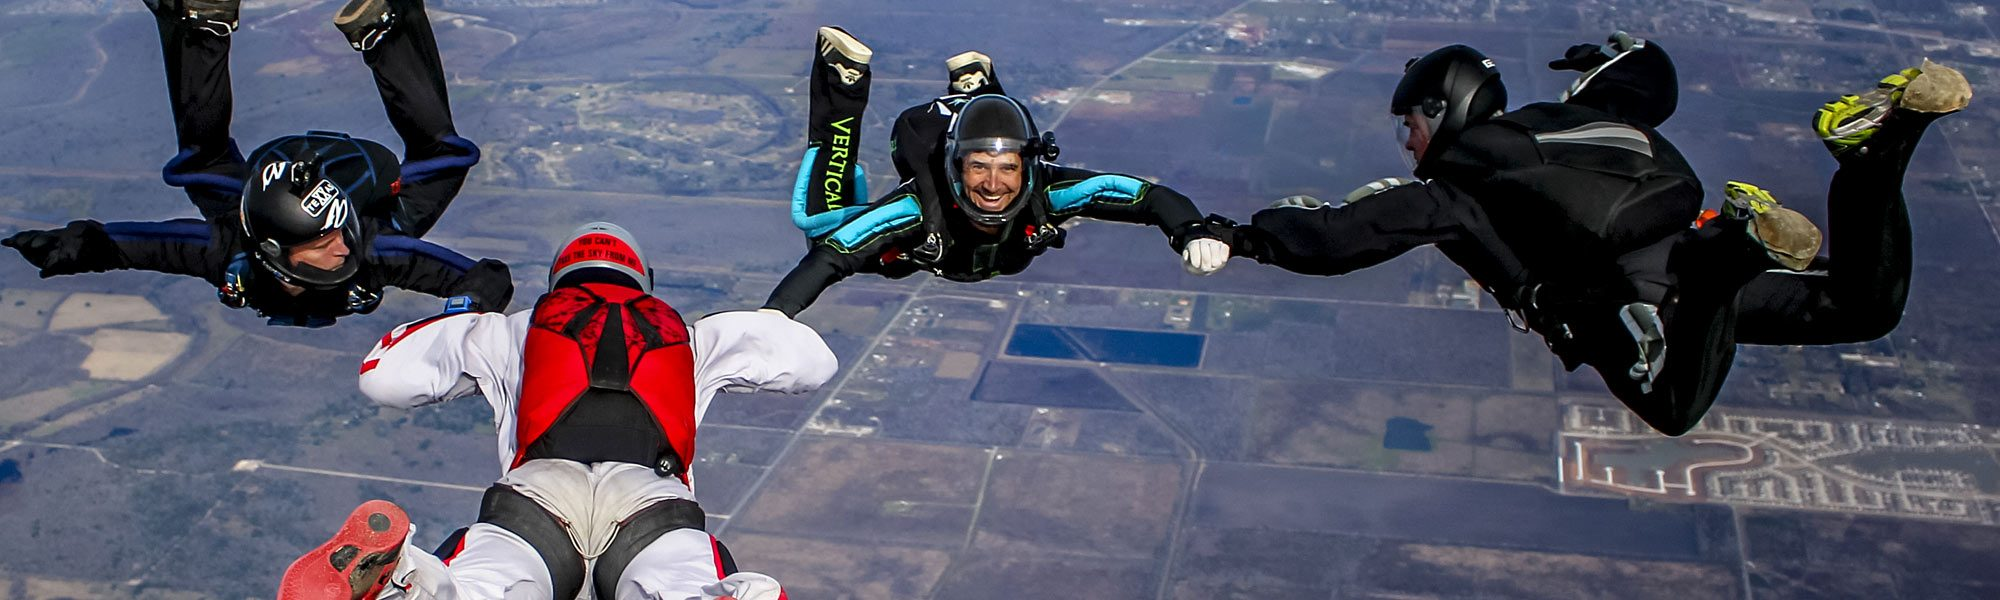 Post-Grad Transitions Program for New Skydivers - Skydive